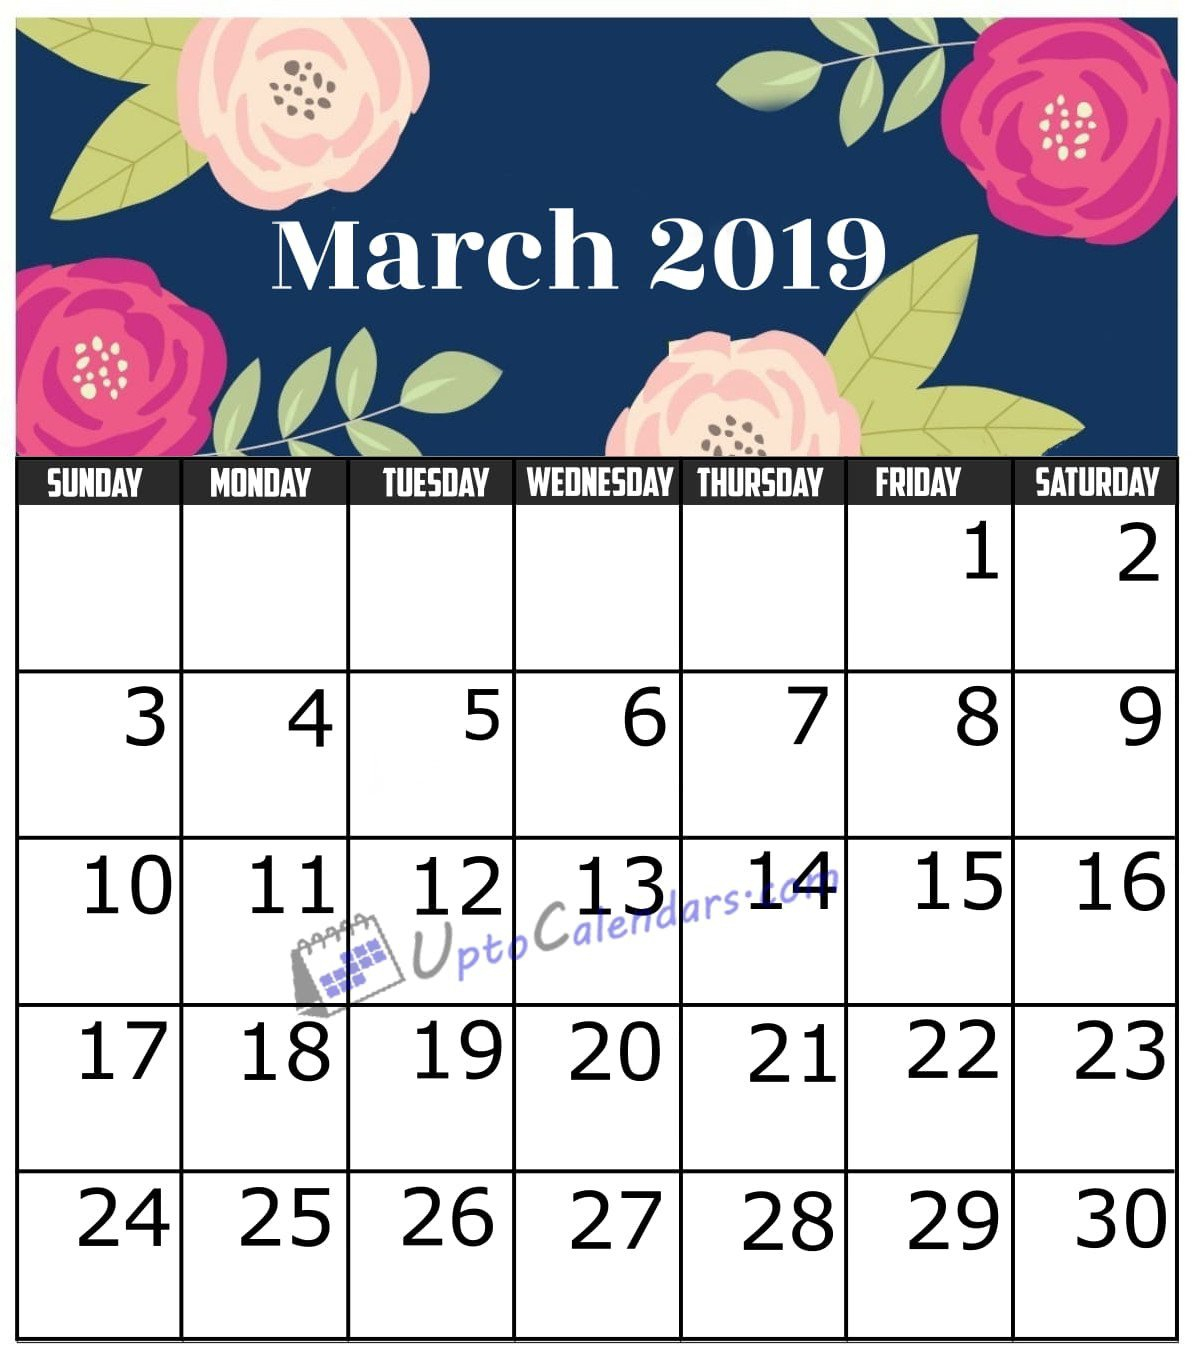 March 2019 Calendar Printable Template With Holidays Pdf Word Excel March 8 2019 Calendar